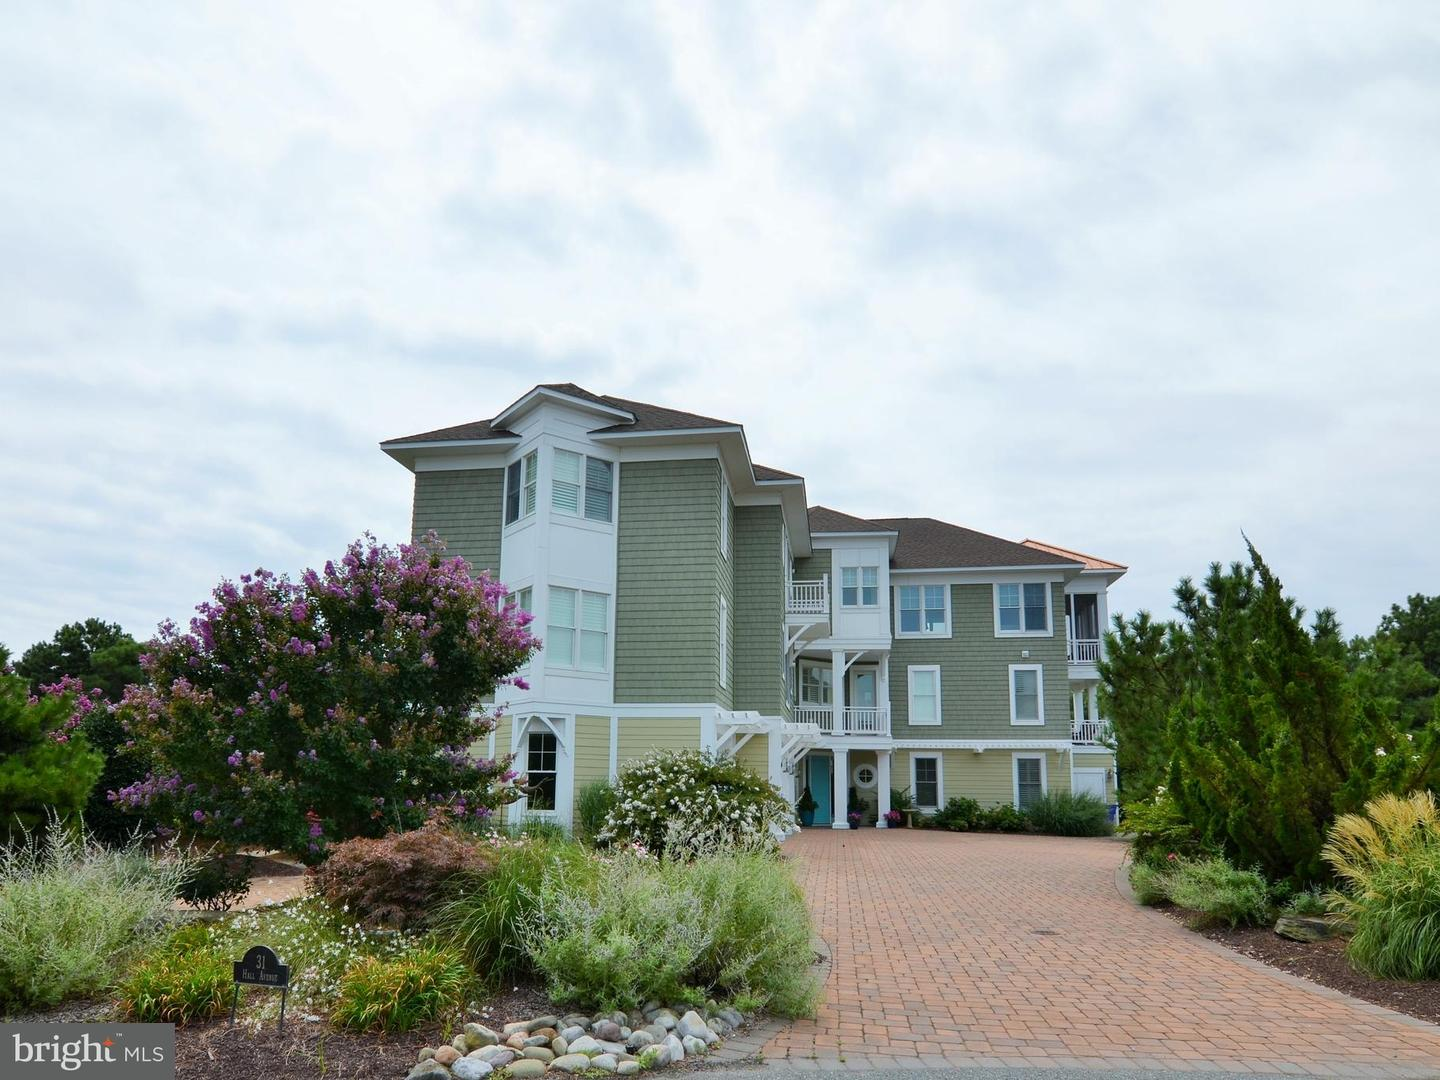 1002293530-300500804894-2018-09-25-15-08-24 31 Hall Ave | Rehoboth Beach, DE Real Estate For Sale | MLS# 1002293530  - 1st Choice Properties